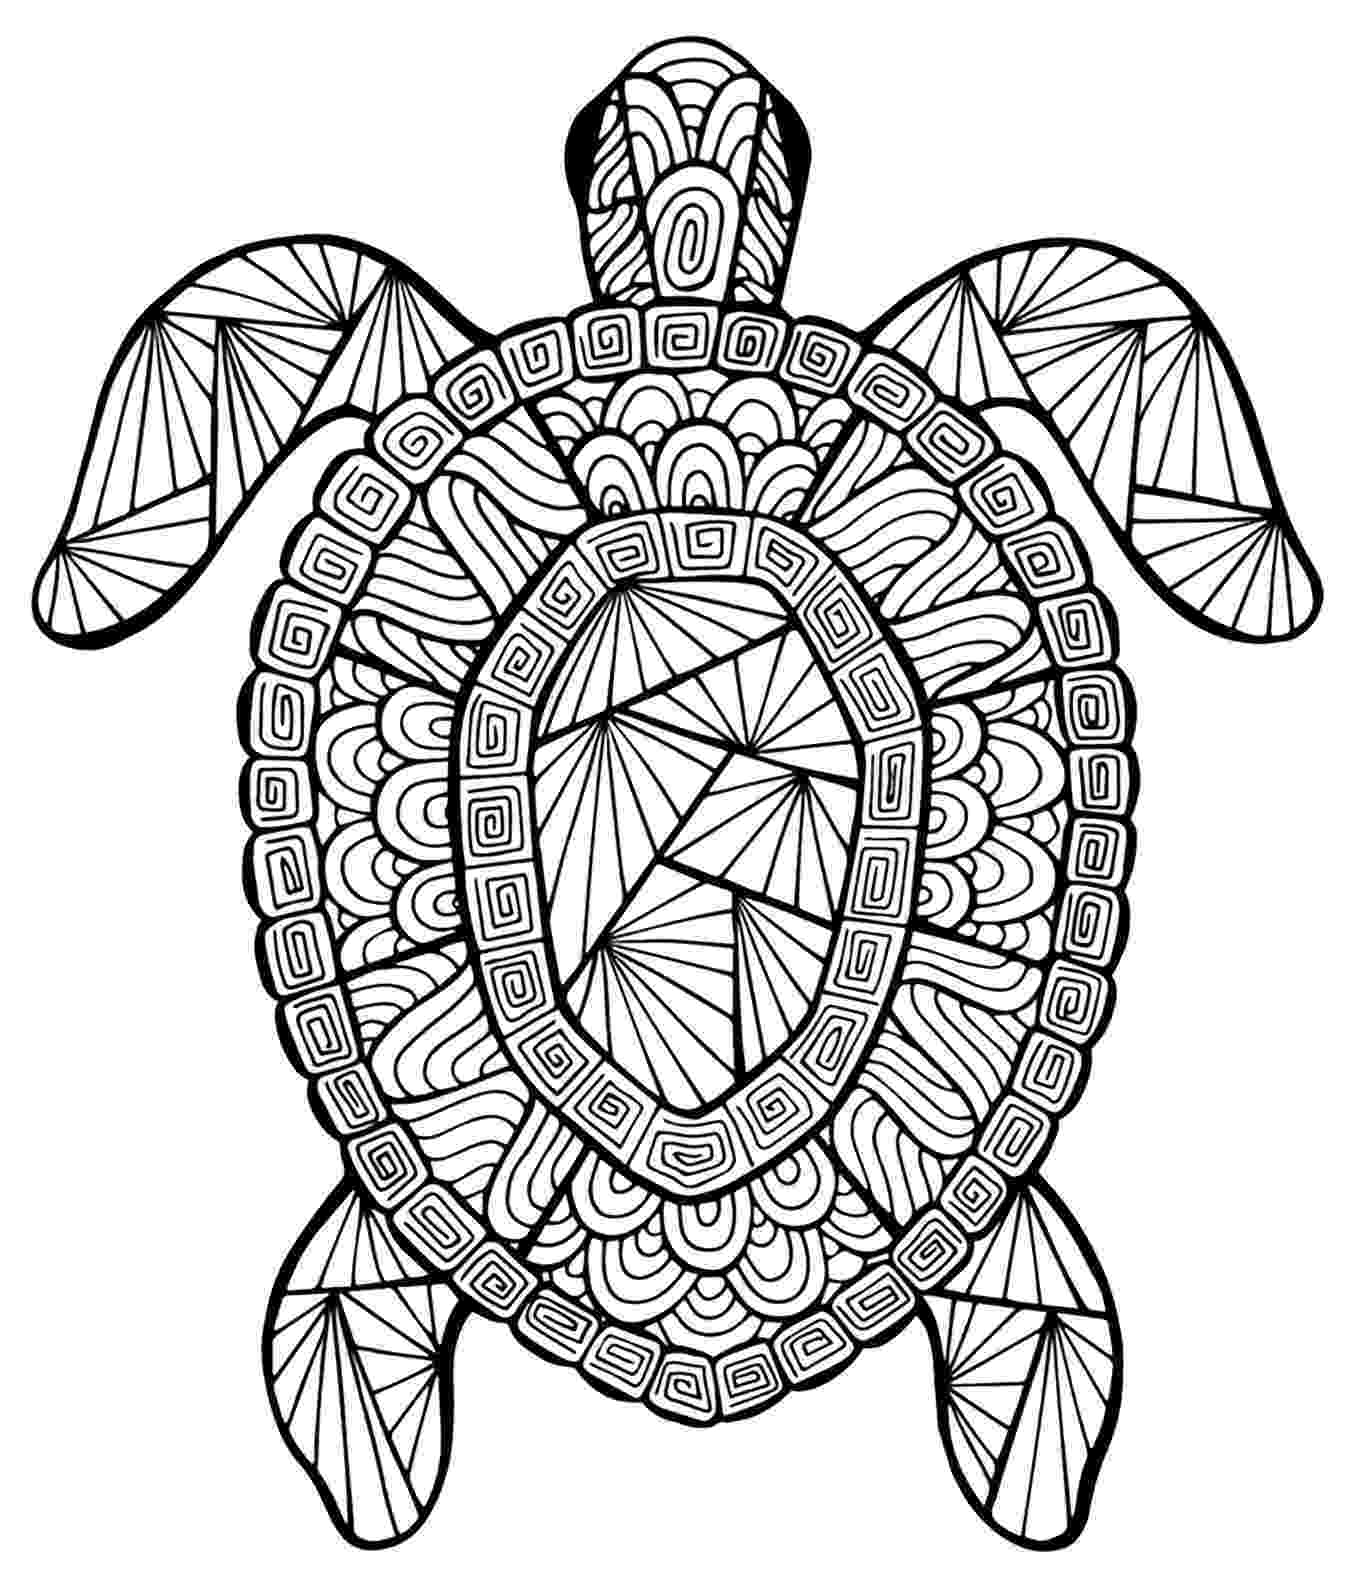 coloring book for adults where to incredible turtle turtles adult coloring pages adults coloring to for where book